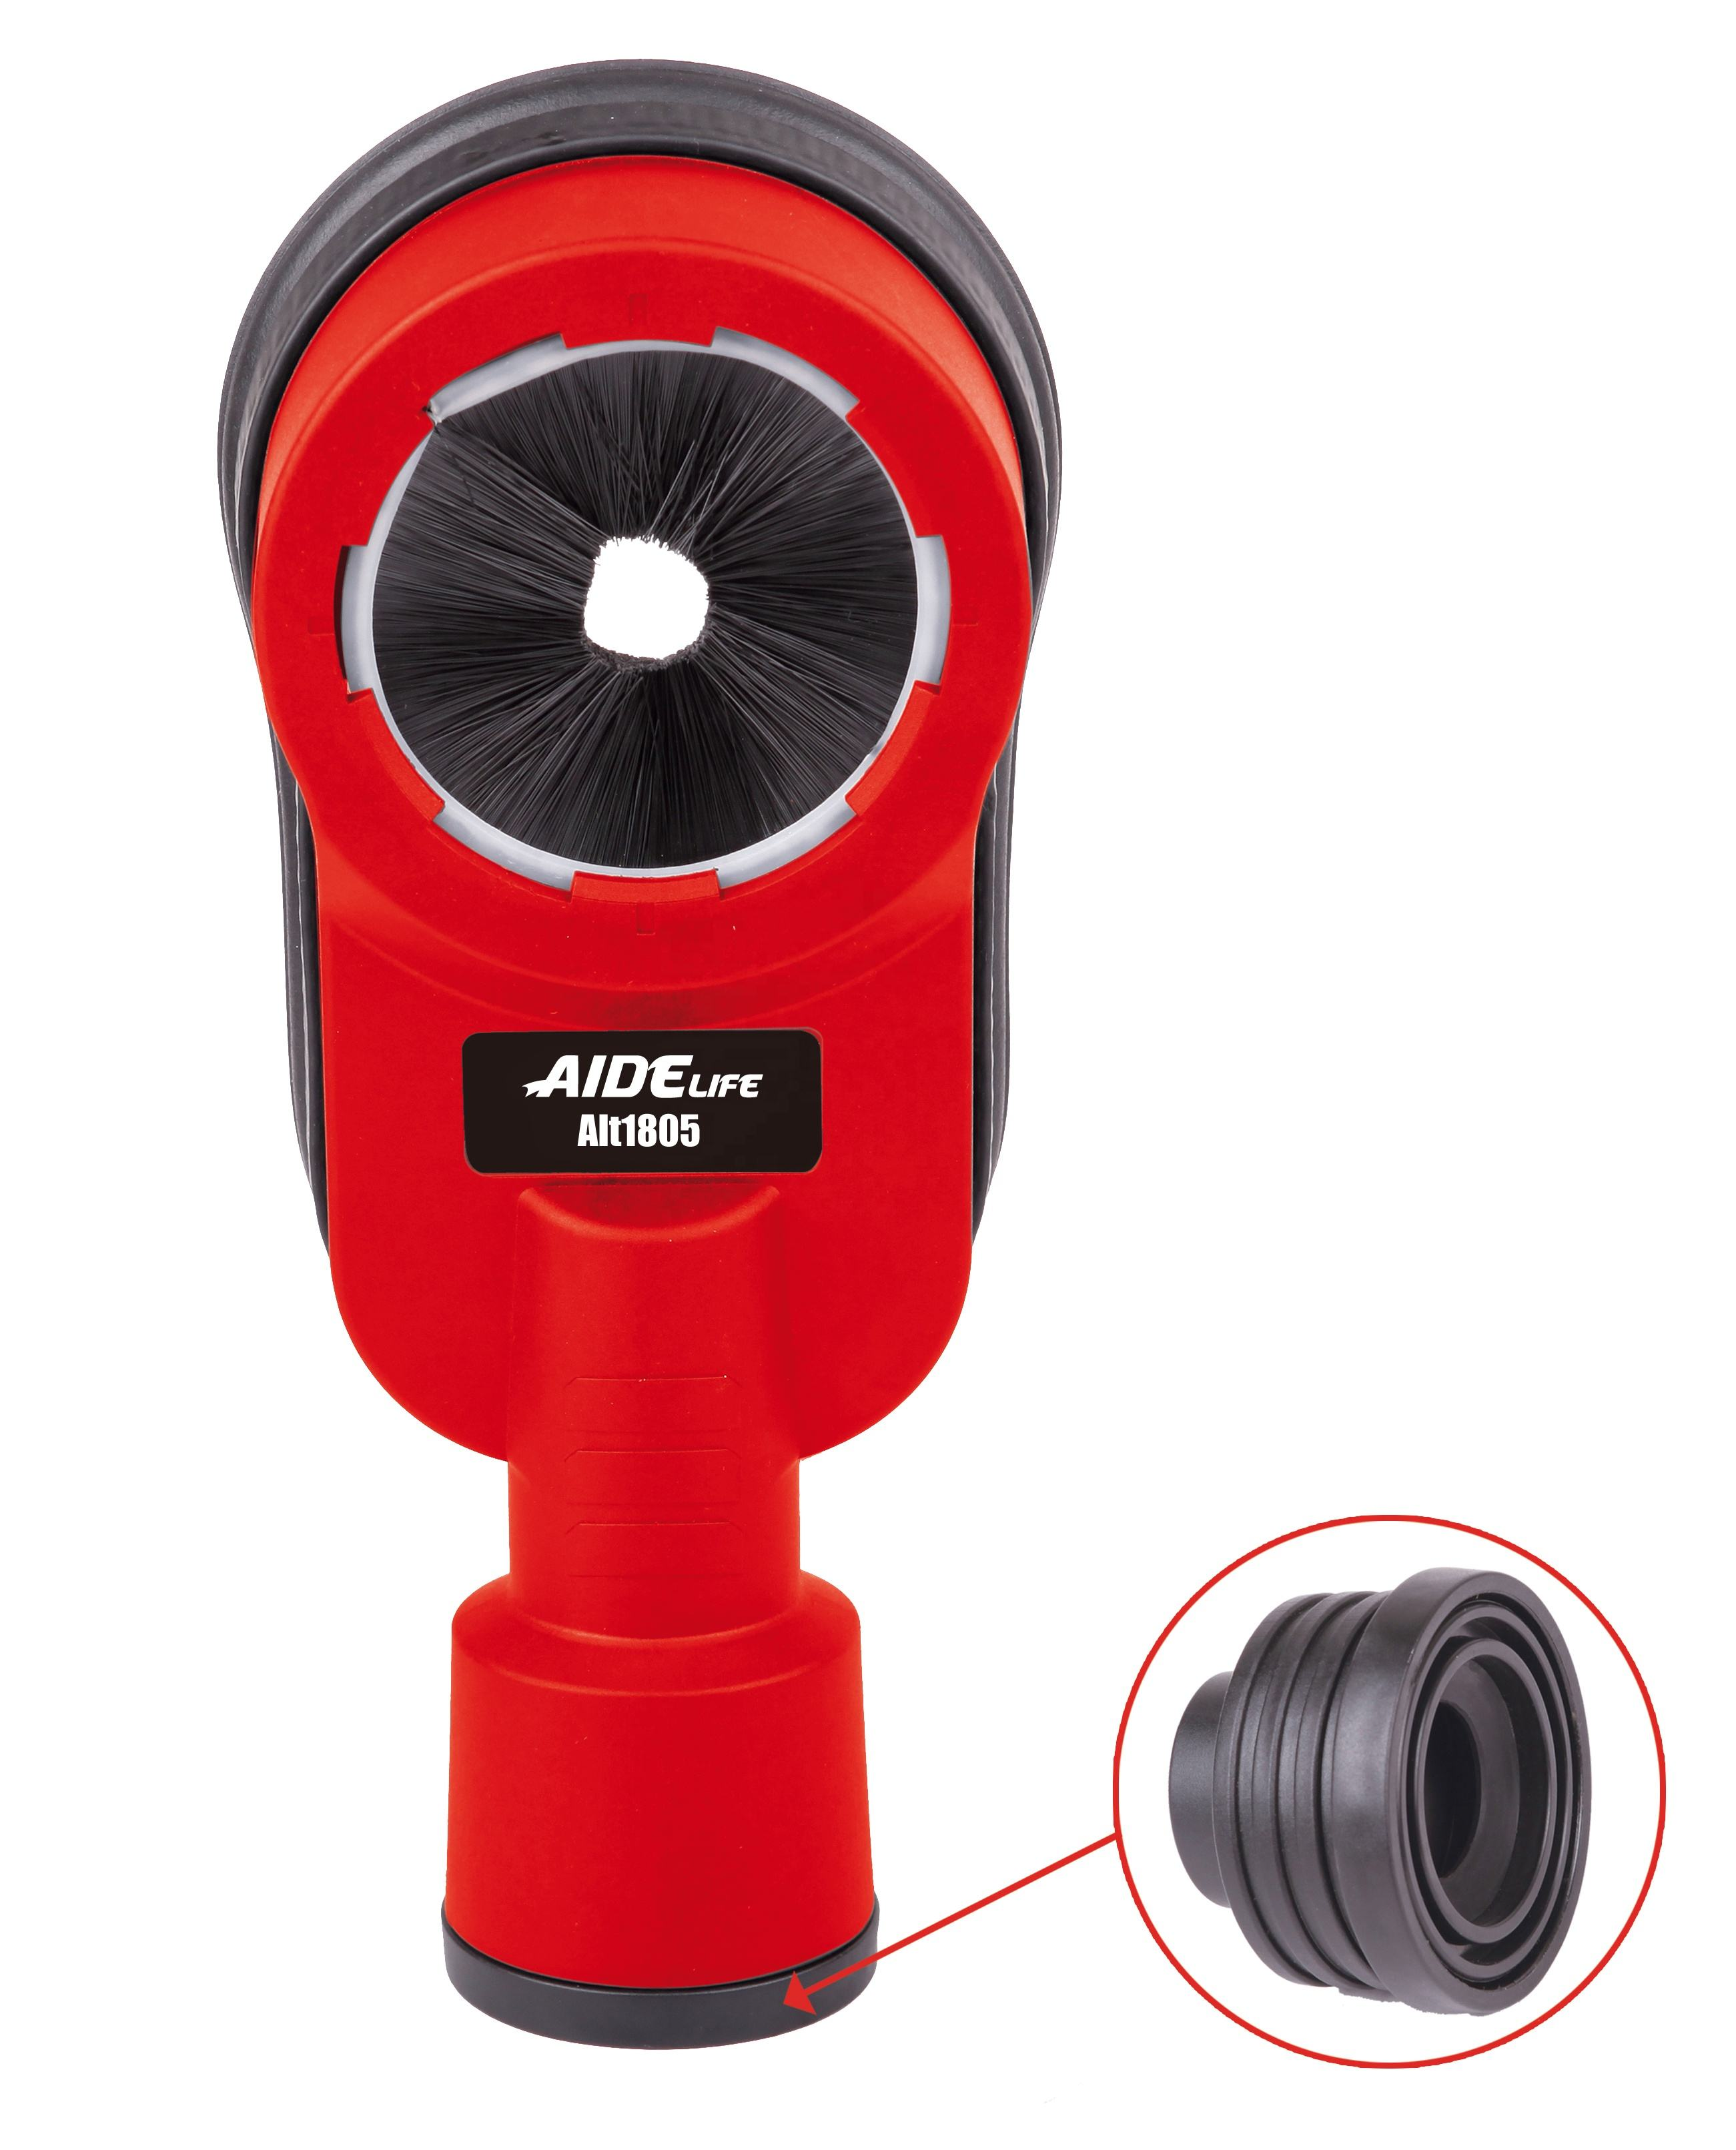 Aidelife Drilling Dust Collection Attachment,Universal Dust Shroud for Drilling